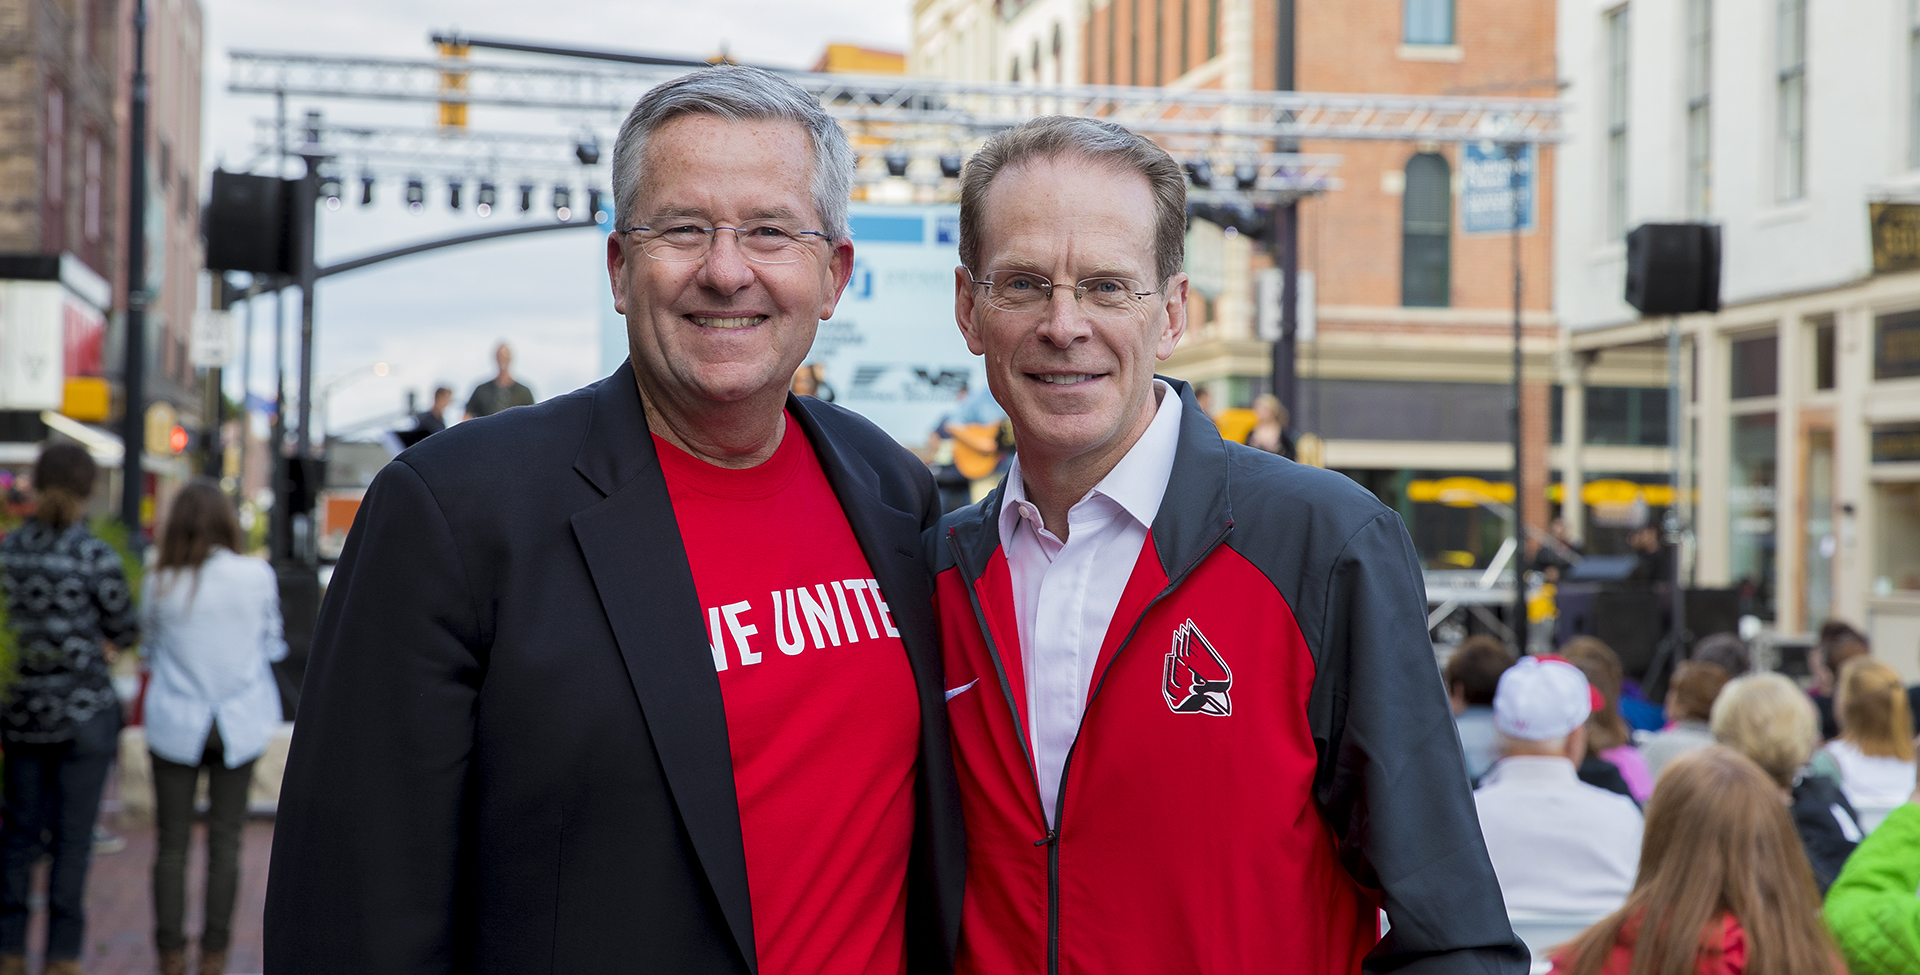 President Geoffrey S. Mearns (right) and Board of Trustees member Brian Gallagher